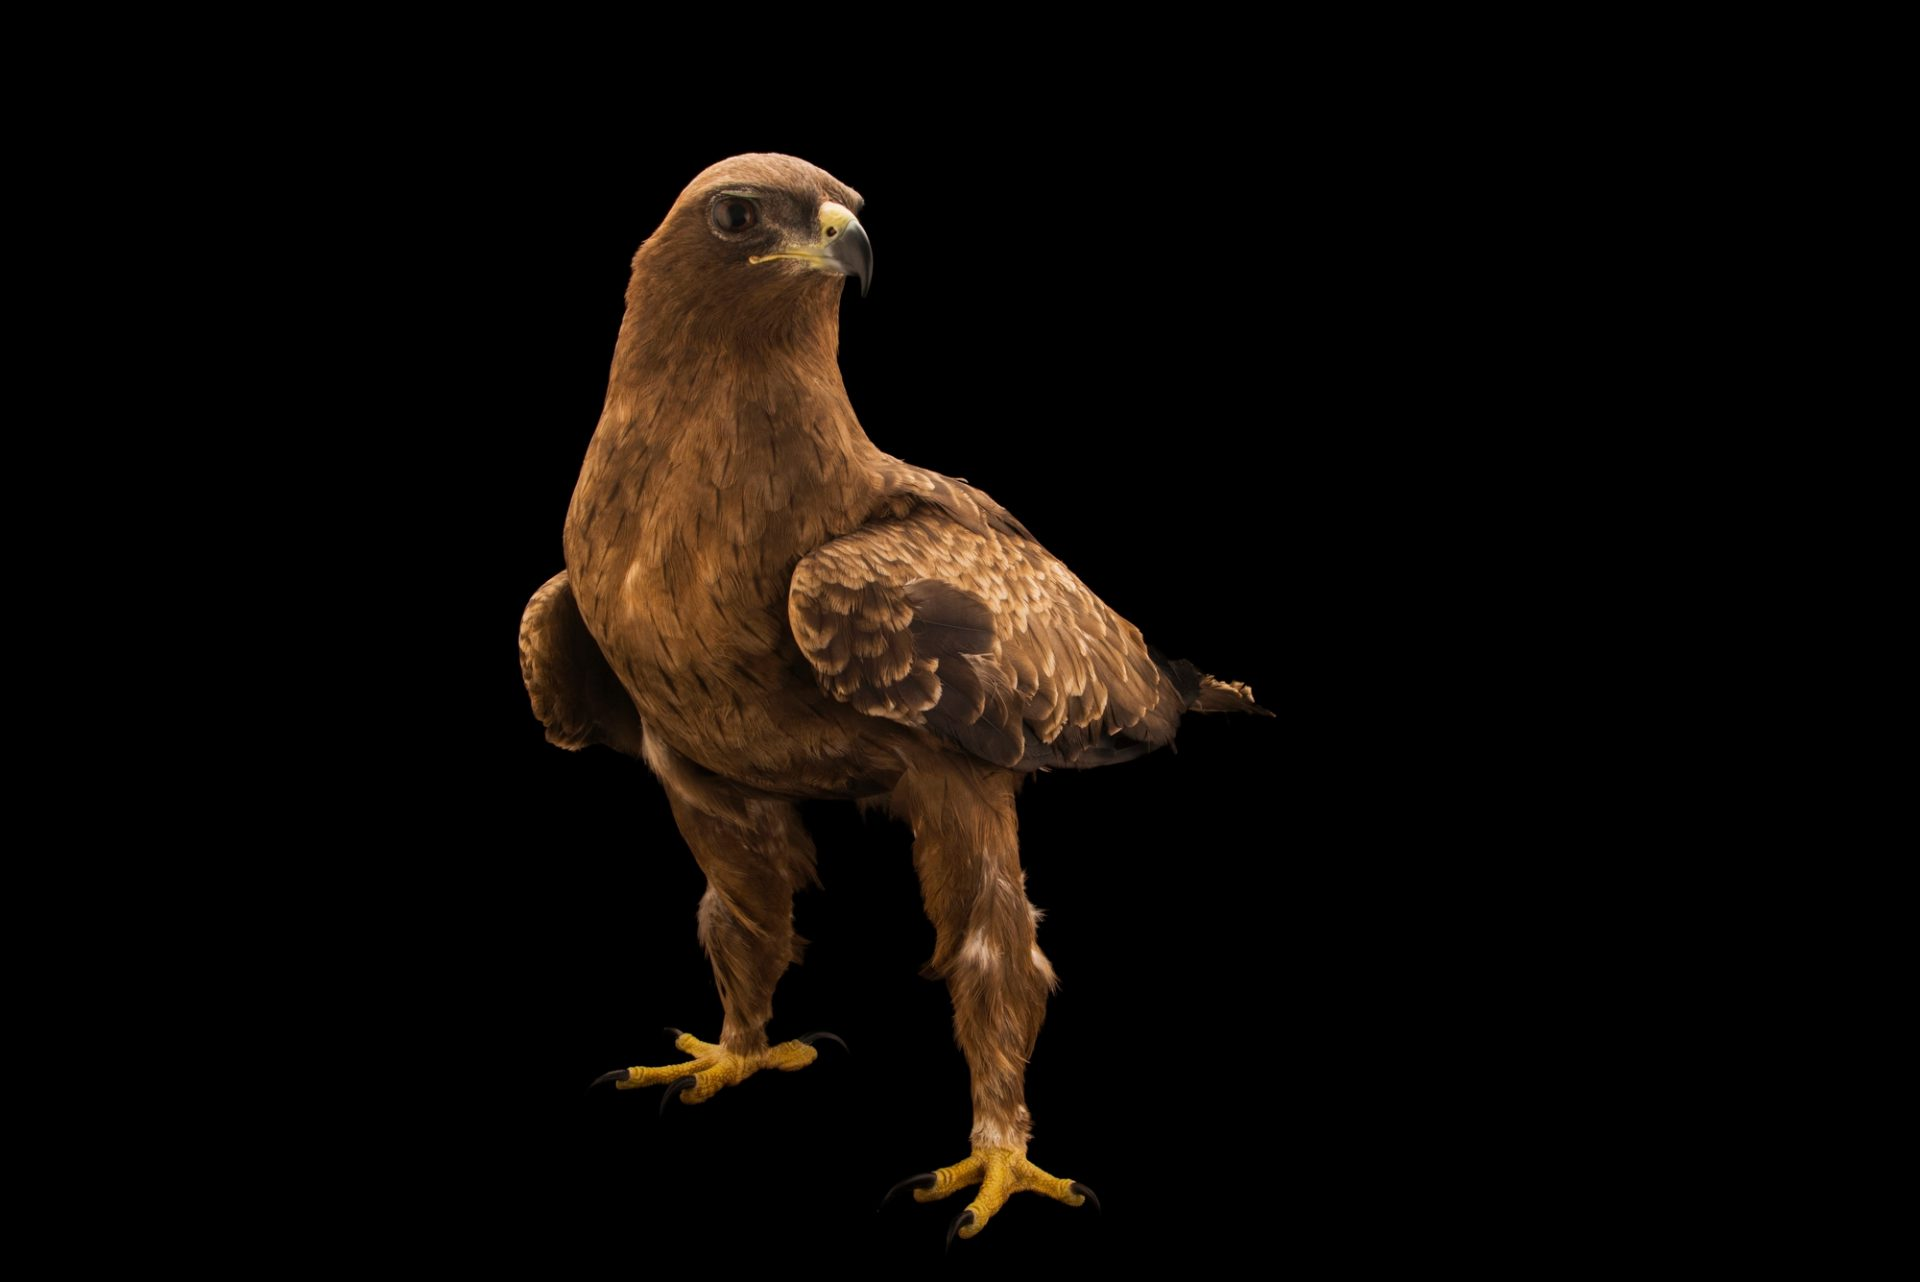 Photo: A Wahlberg's eagle (Aquila wahlbergi) at Sia, the Comanche Nation Ethno-Ornithological Initiative.